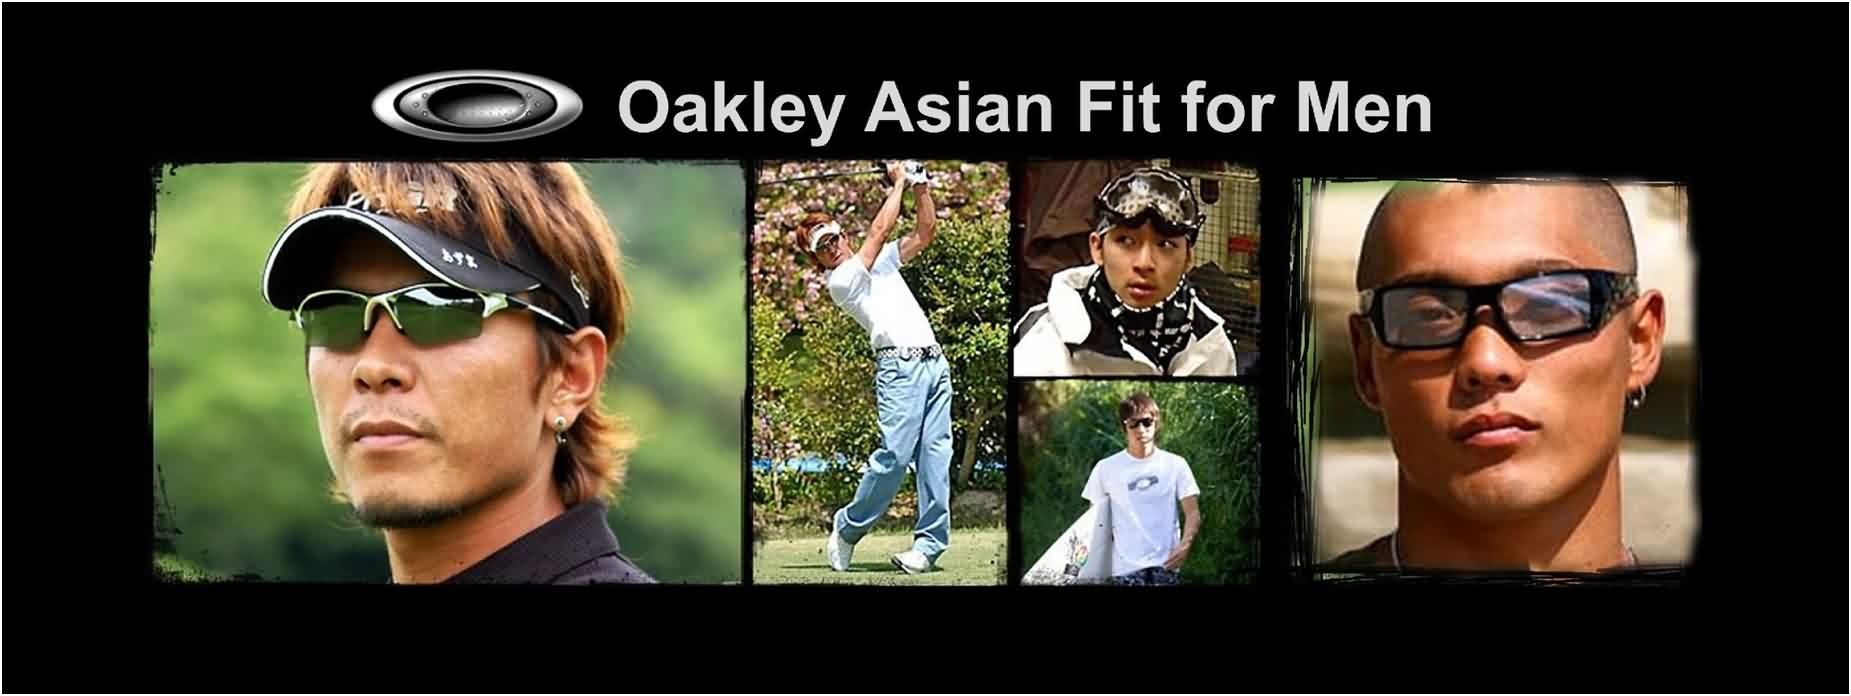 Oakley sunglasses asian fit - Oakley Asian Fit Sunglasses Guide Lookbook